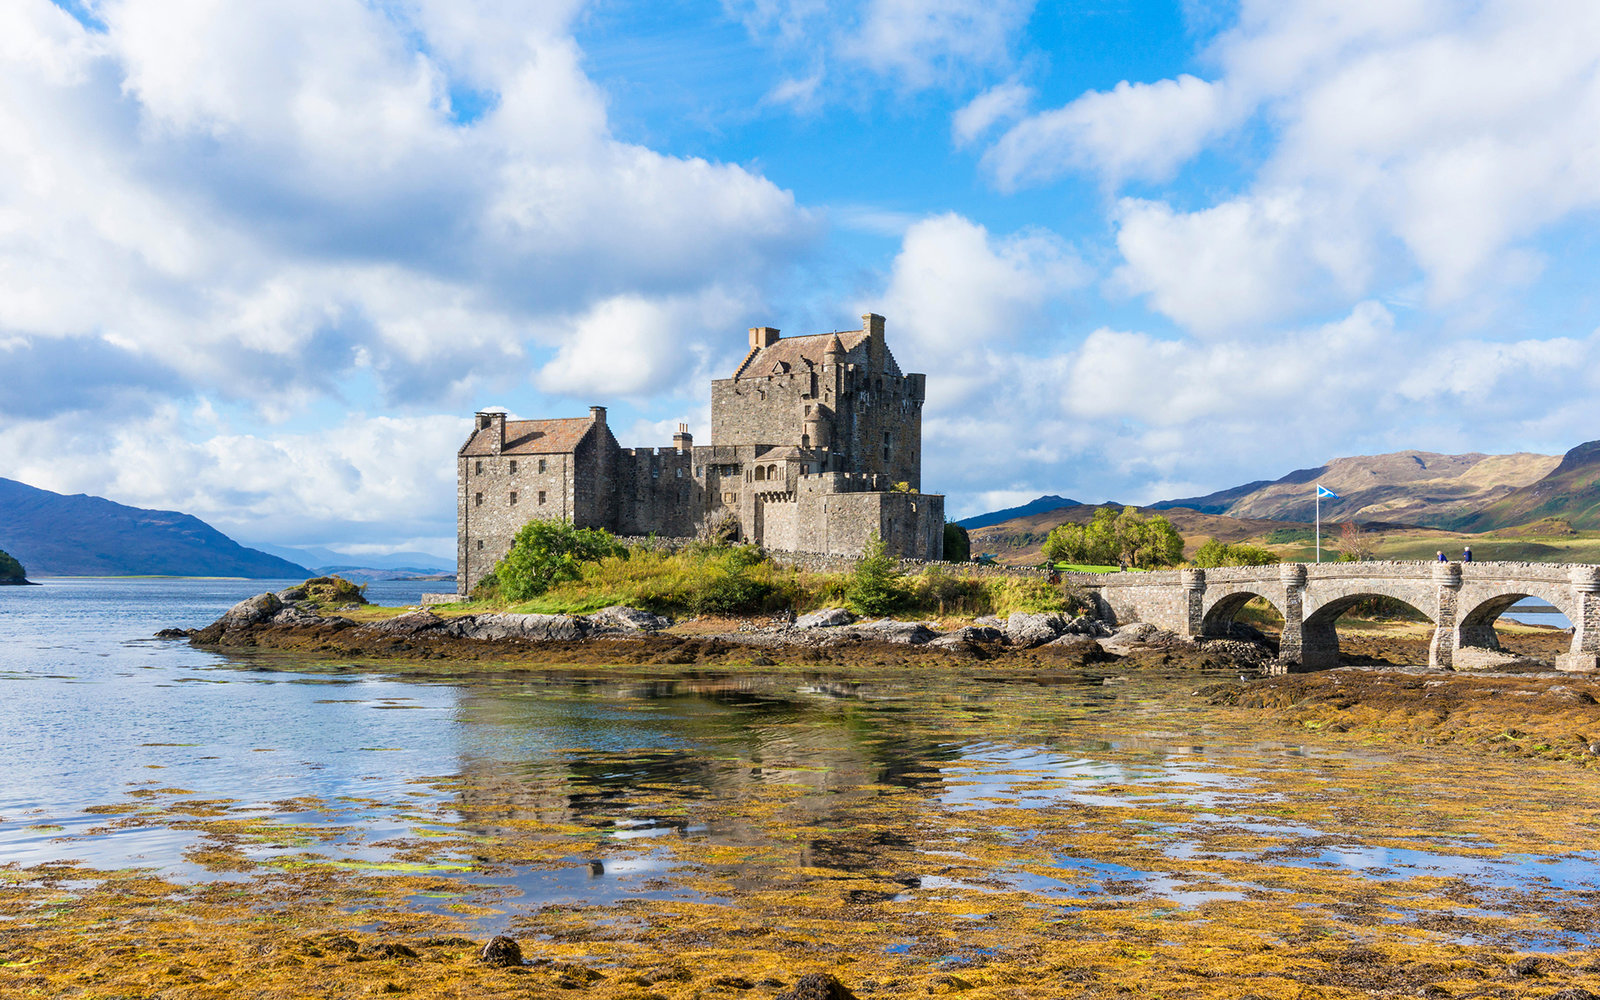 FARXC0 Eilean Donan Castle on the shore of Loch Duich Ross and Cromarty Western Highlands of Scotland UK GB EU Europe